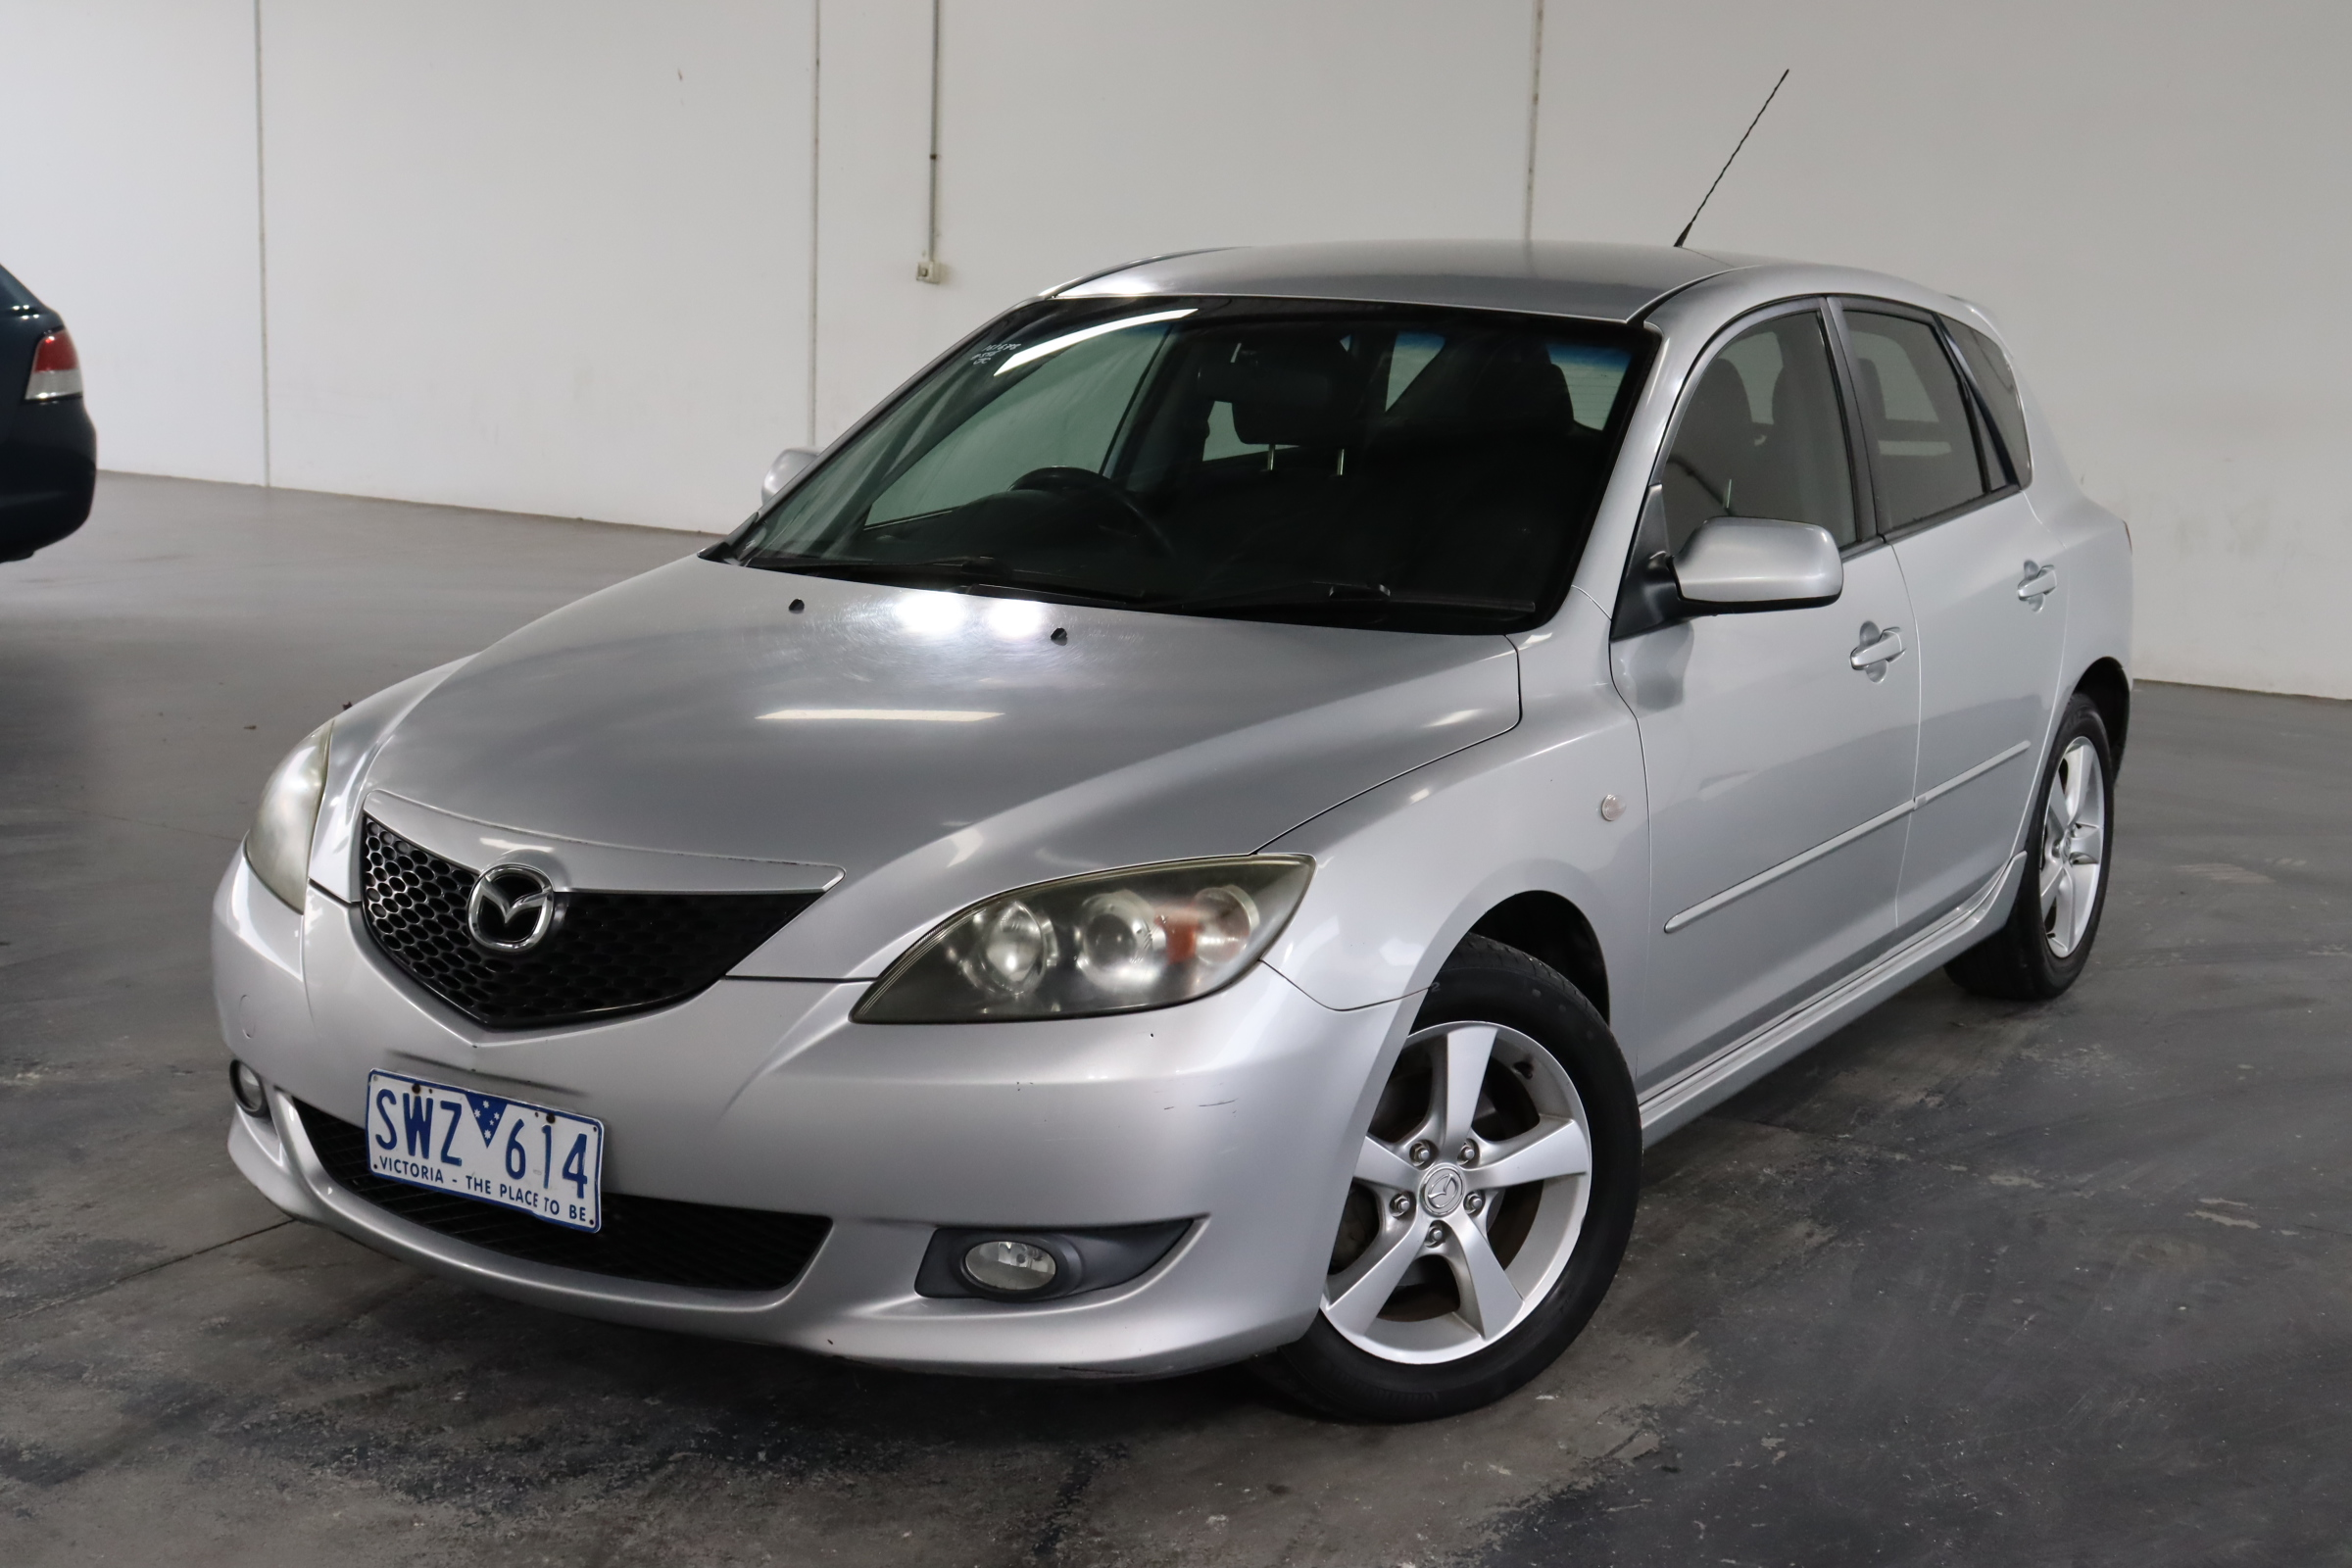 2004 Mazda 3 Maxx Sport BK Manual Hatchback